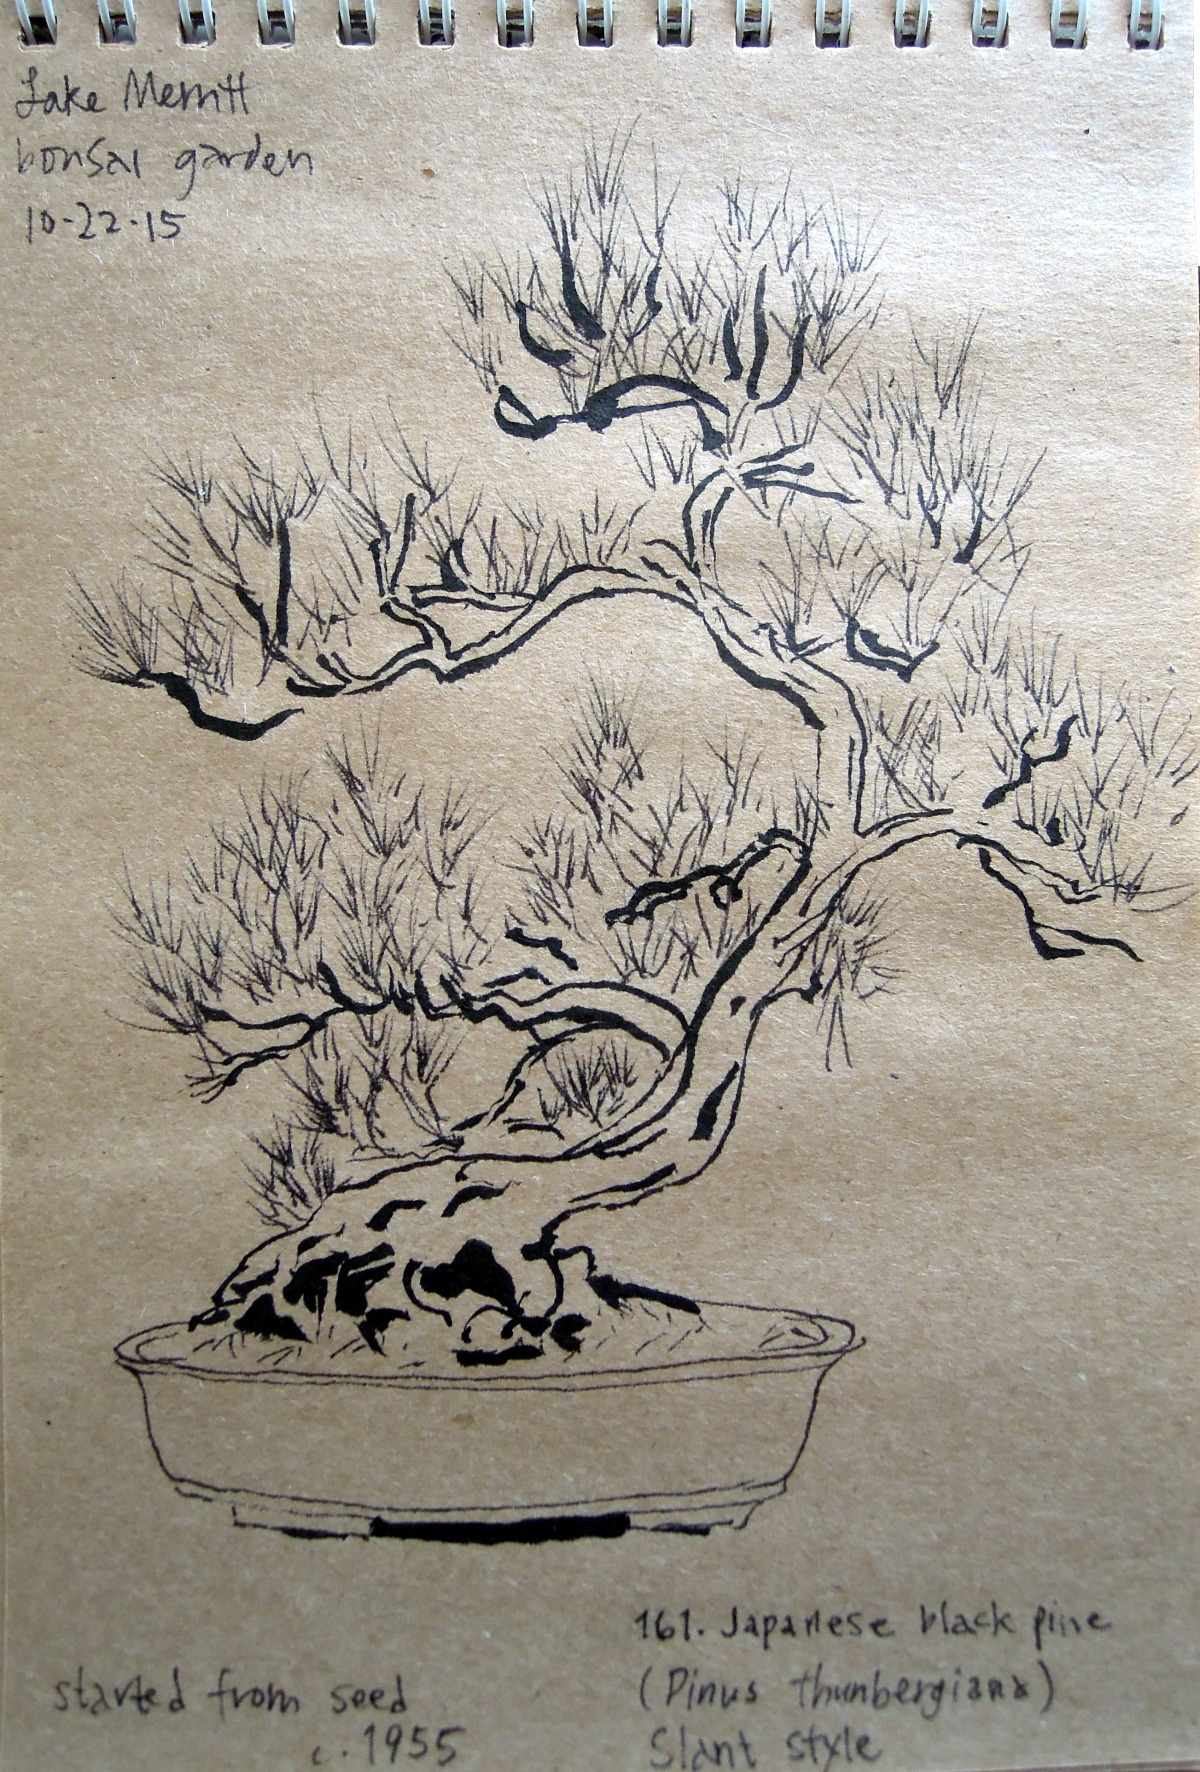 Sketch of Japanese black pine at the Bonsai Garden at Lake Merritt, Oakland